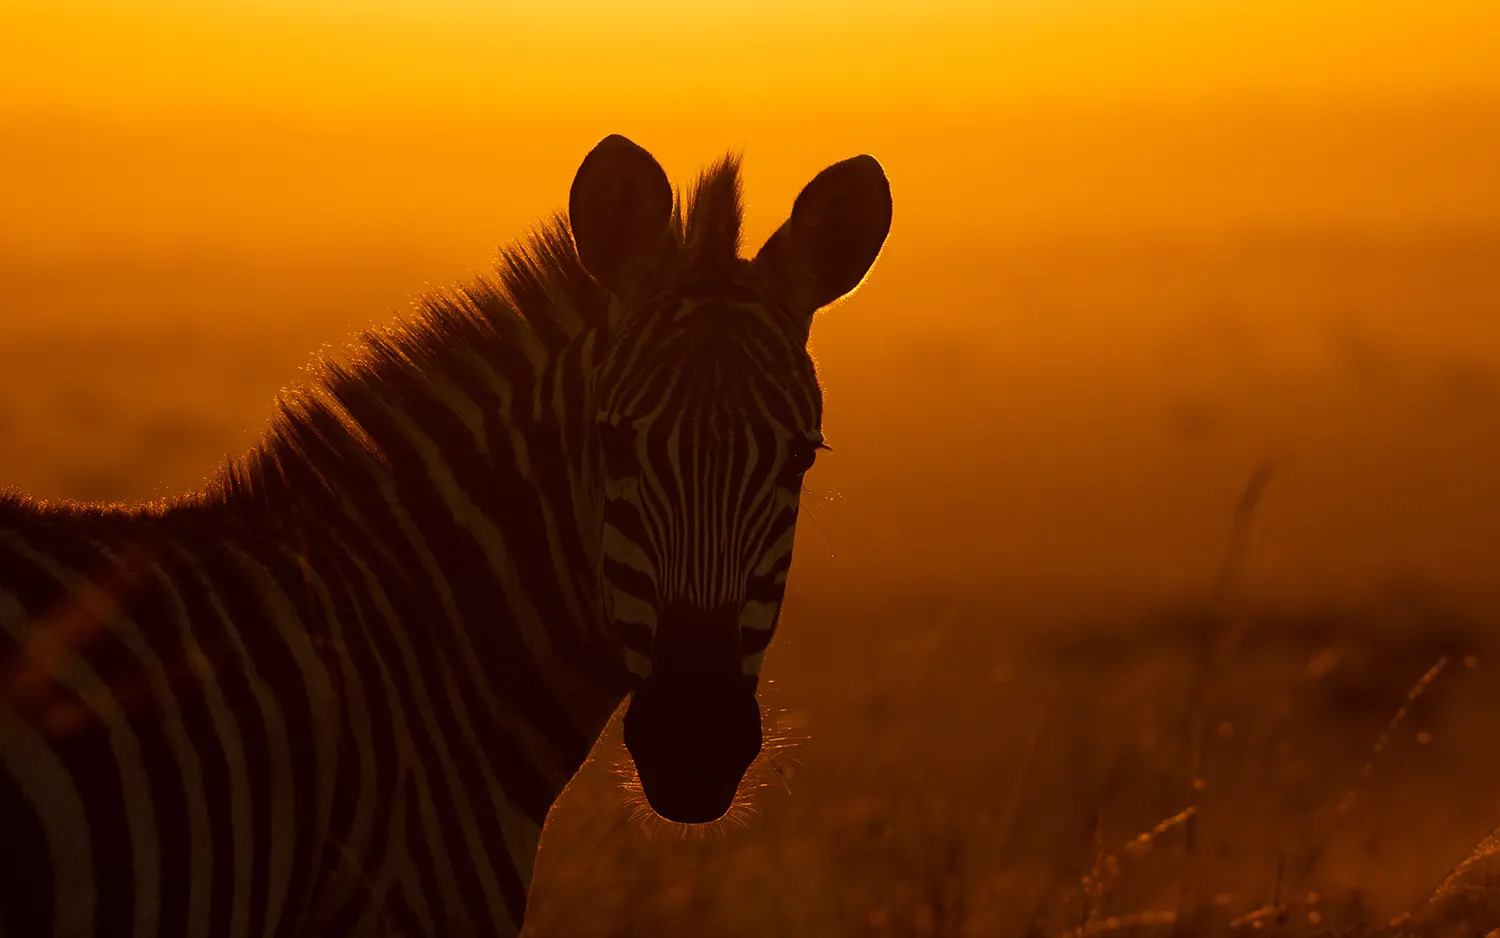 TNW_14_10_18_Zebra At Sunrise